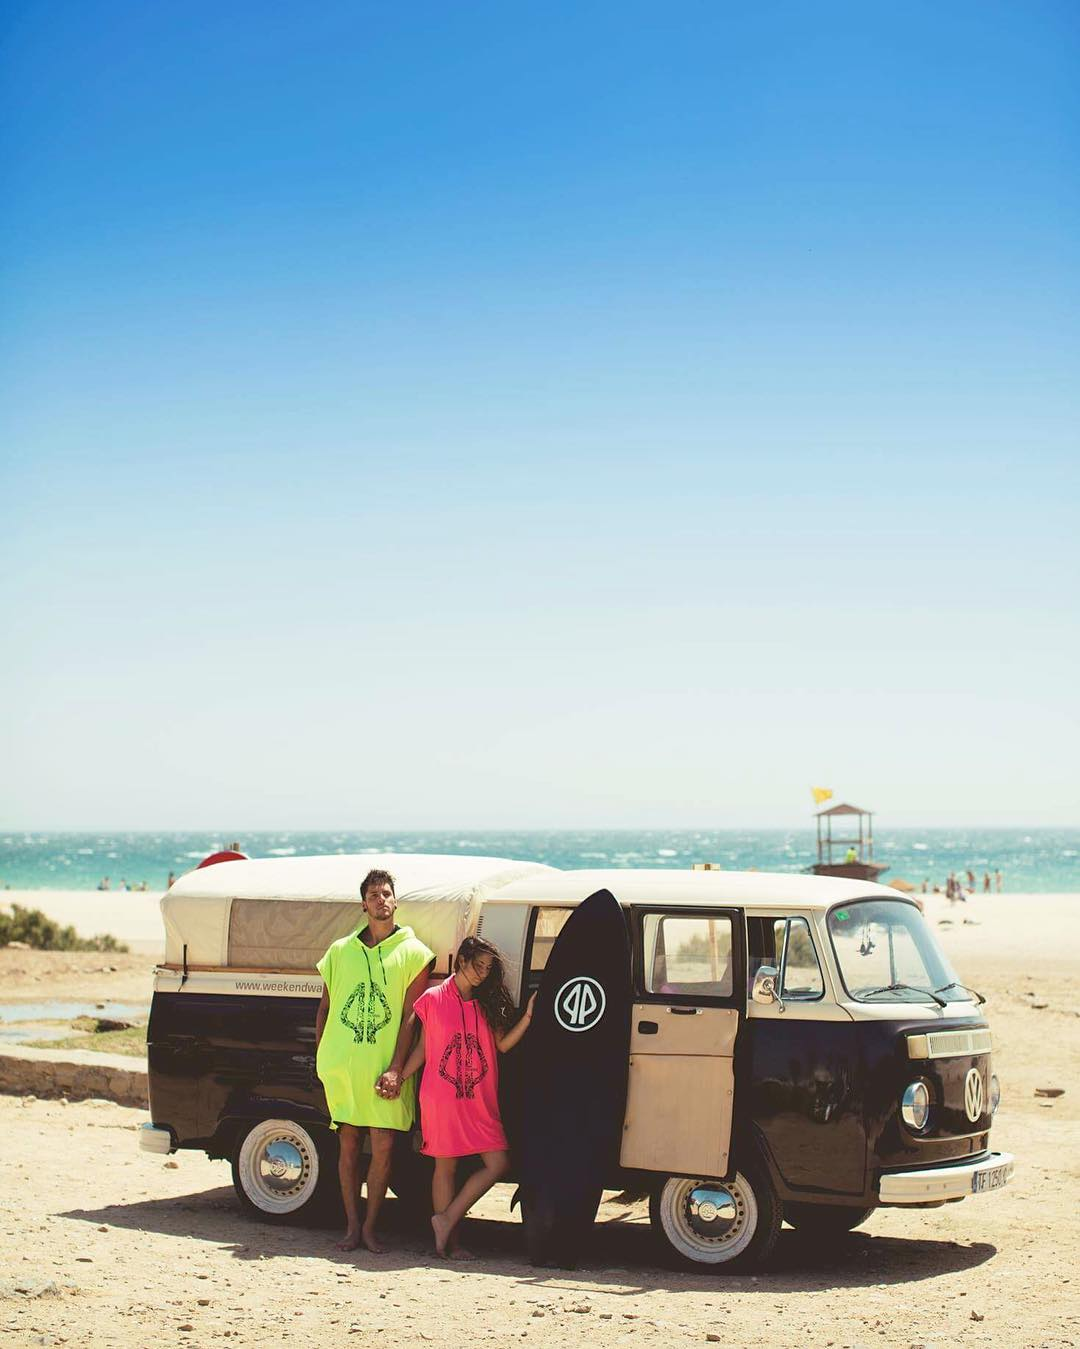 Wherever you go, bring your dreams with you. . . PONCHOS FLUOR AVAILABLE . . #surf #surftrip #vw #combi #van #roadtrip #beach #kitesurf #surfwear #womenwear #poncho #palapapa #tarifa #spain #bettertogether